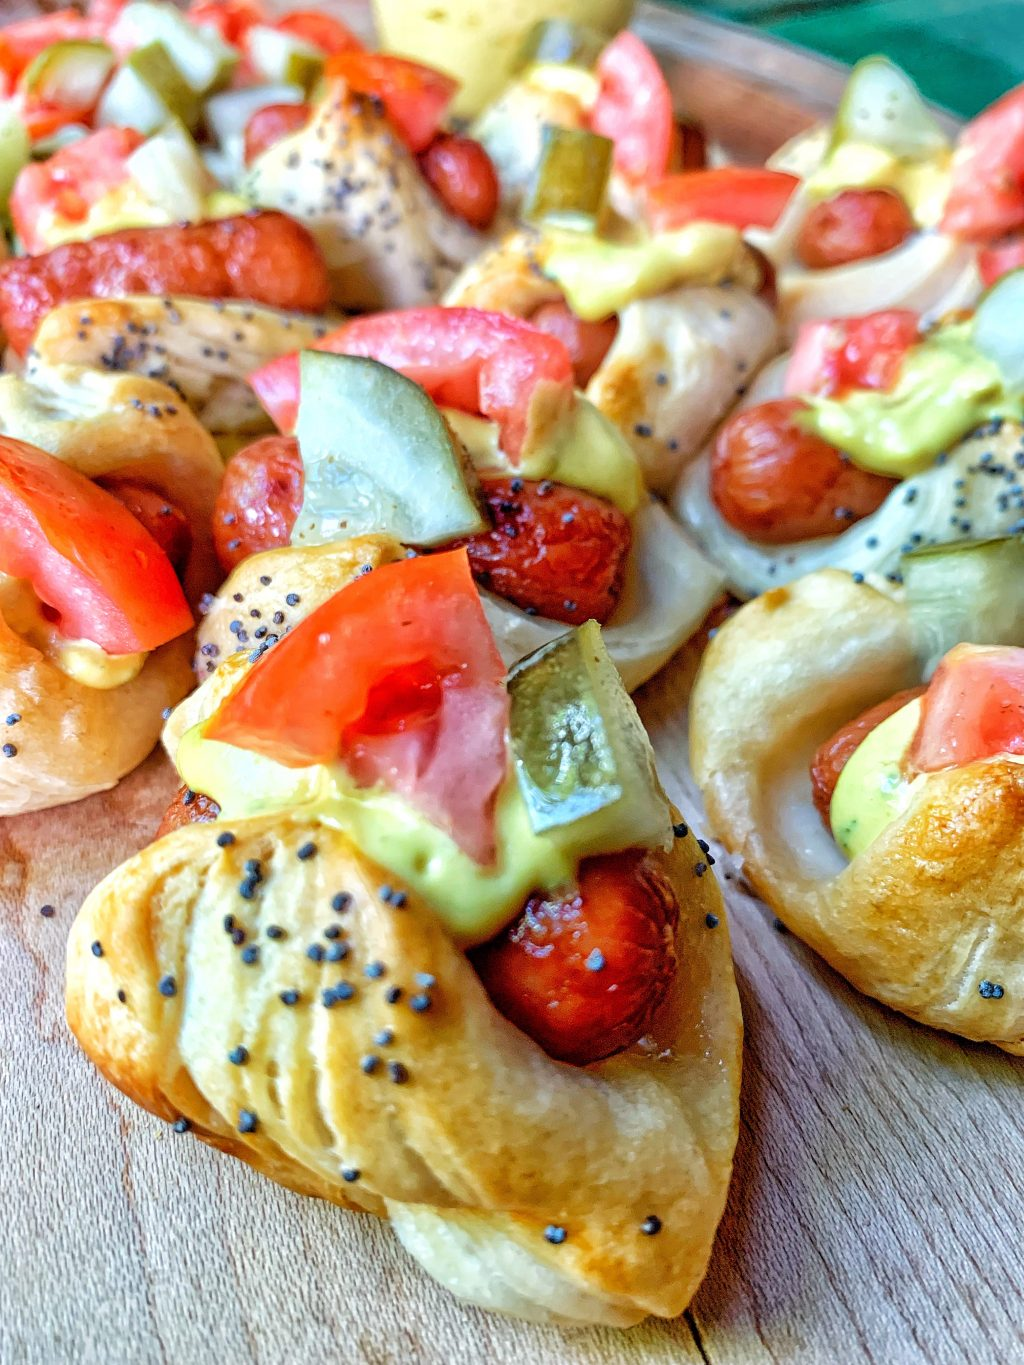 Mini hot dogs with all the toppings.